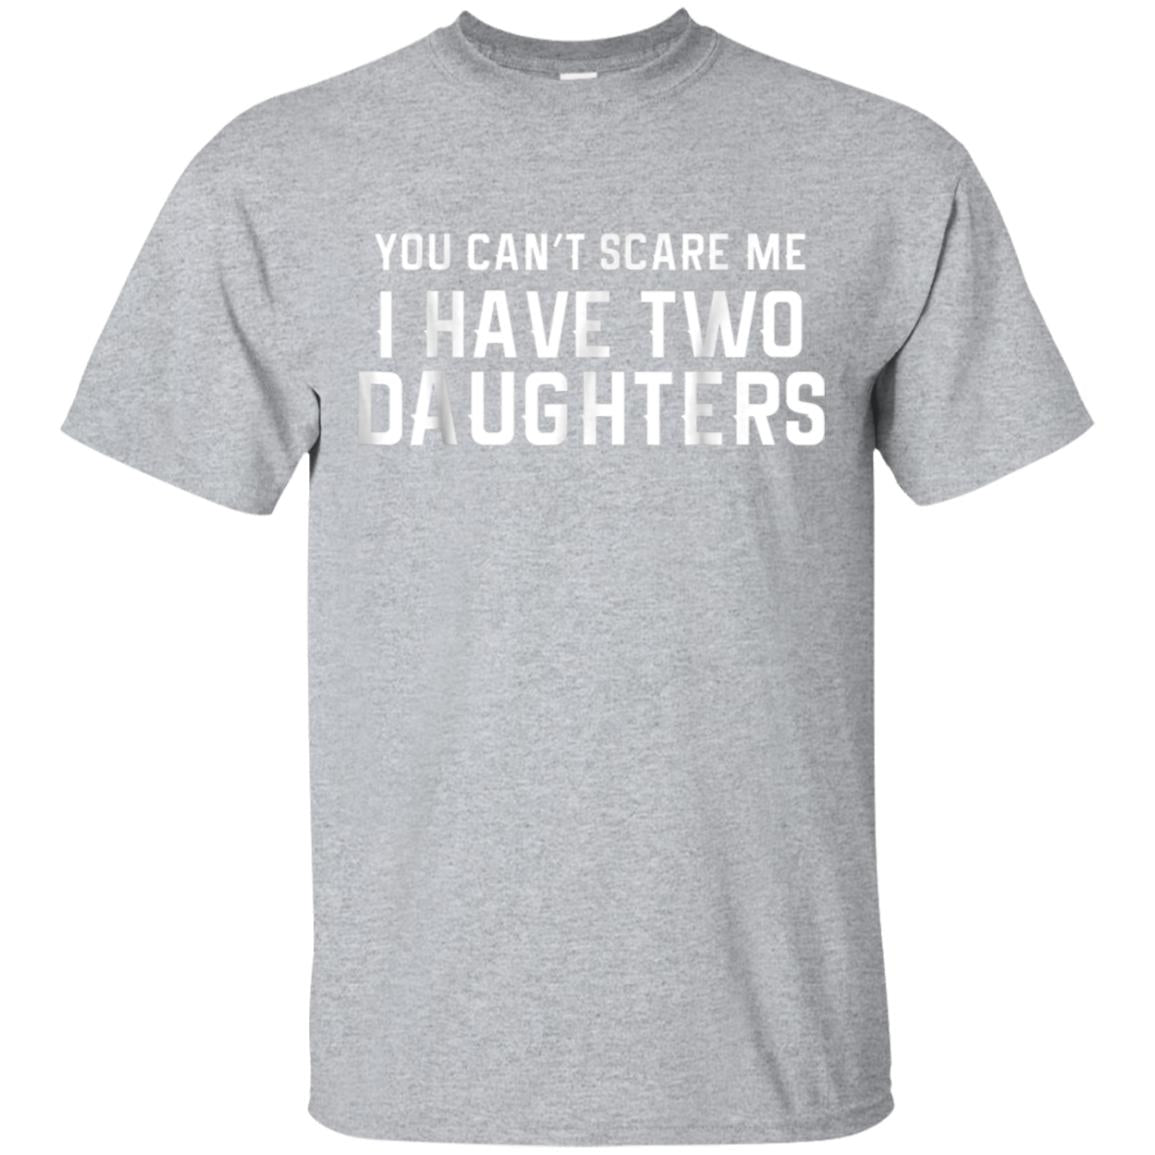 You Can't Scare Me I Have Two Daughters T-shirt 99promocode